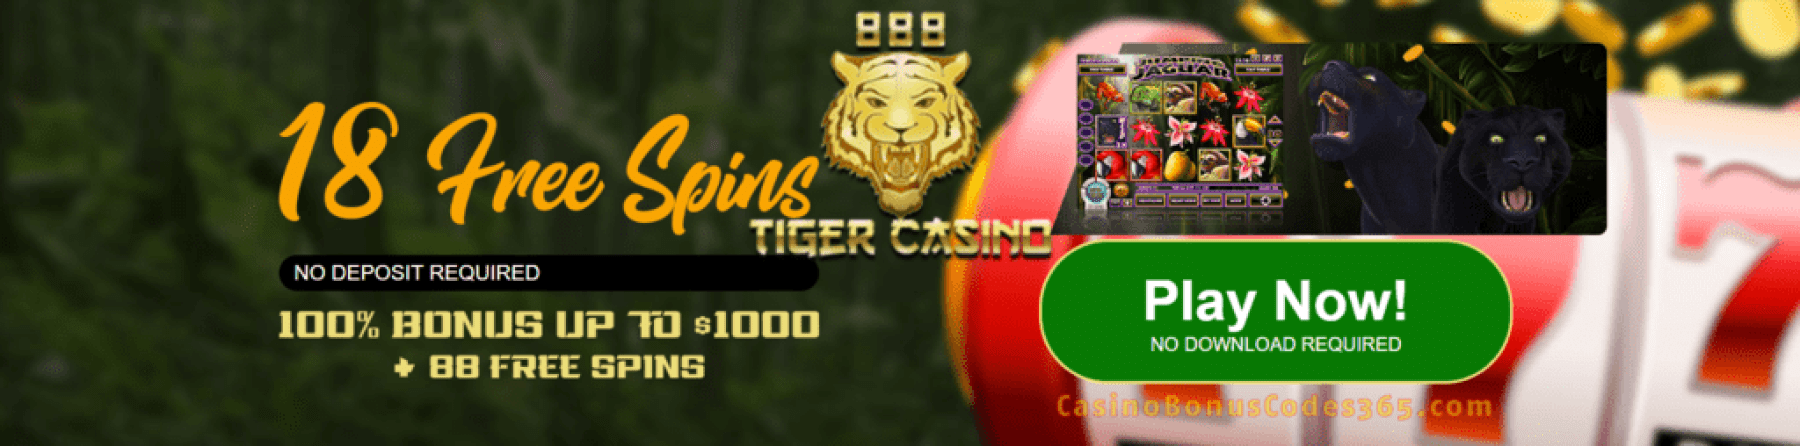 888 Tiger Casino 18 No Deposit FREE Spins Rival Gaming Jumping Jaguar